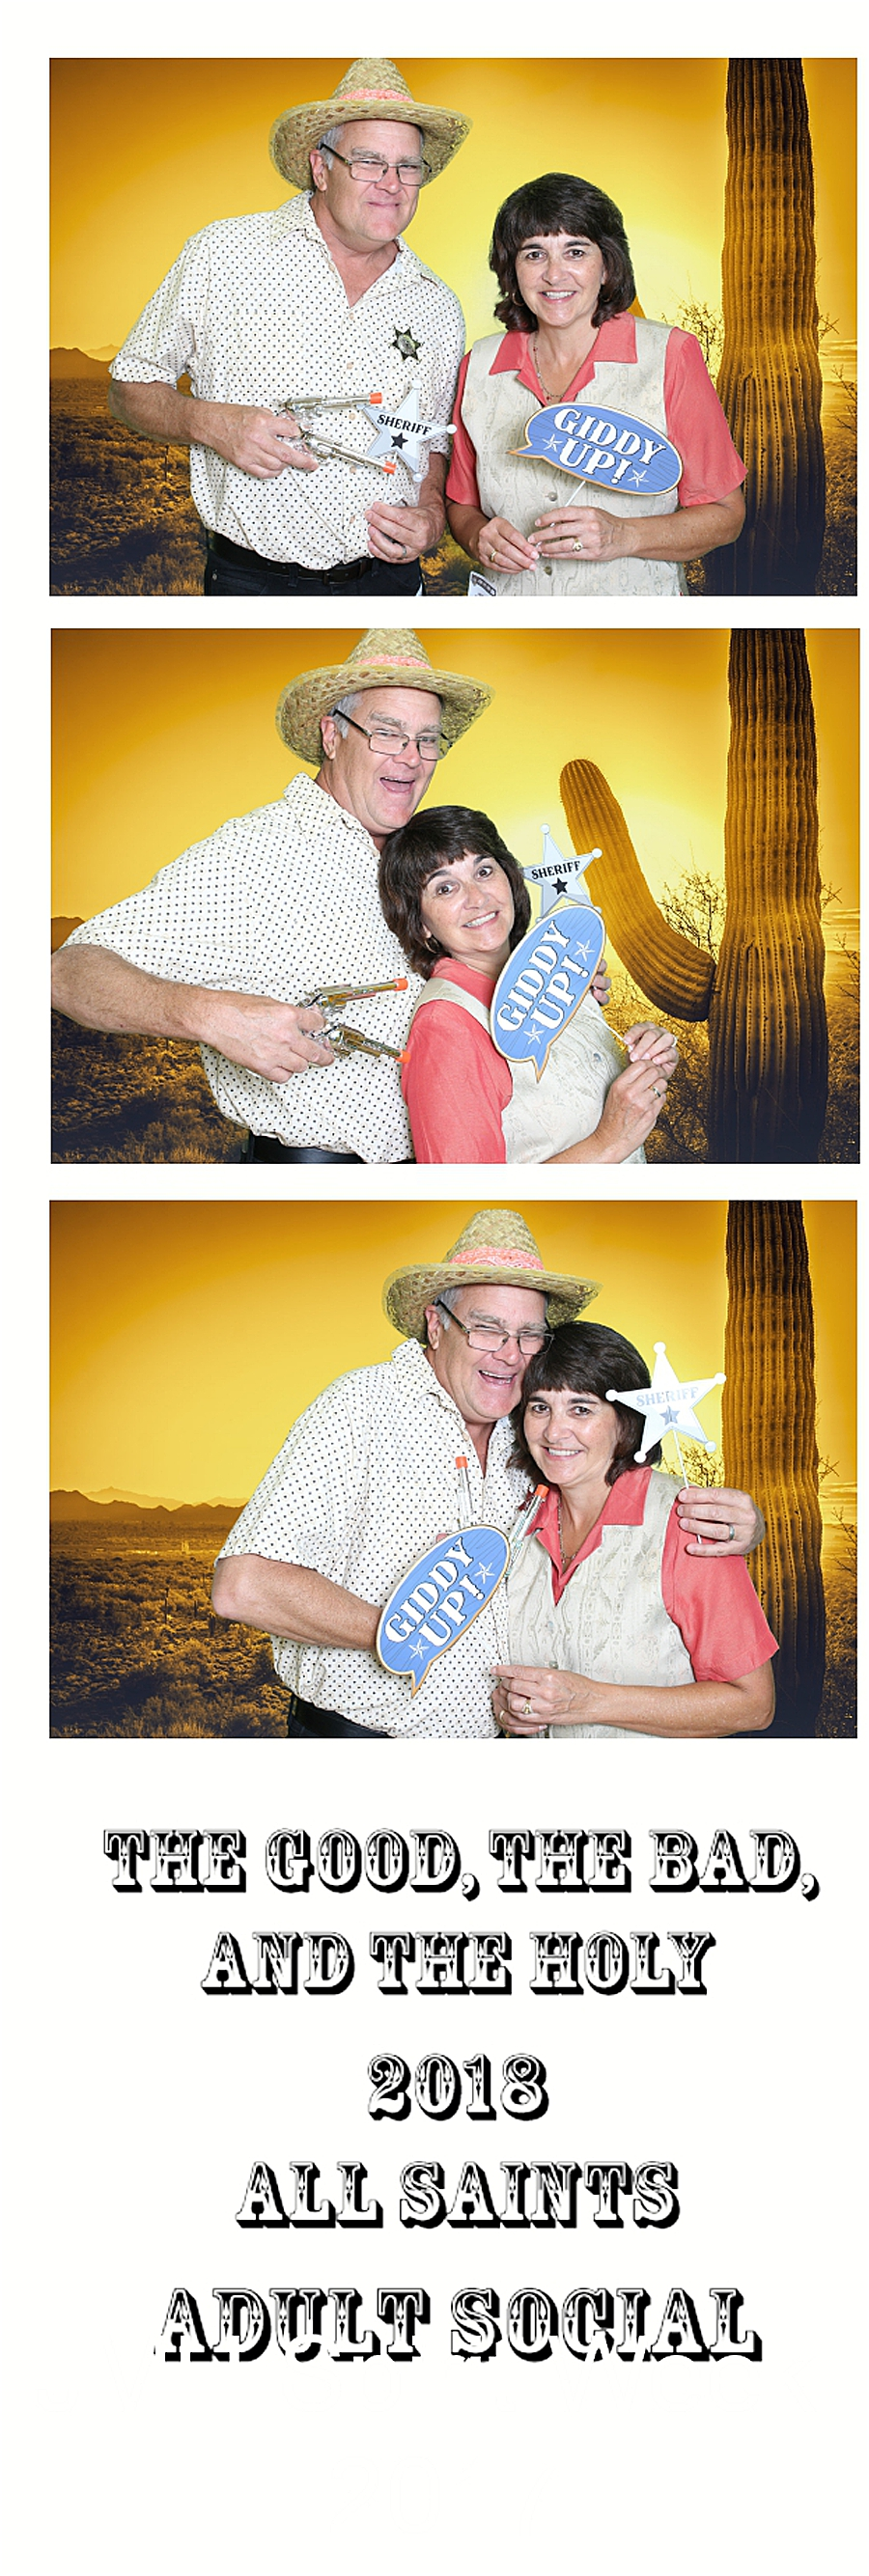 Knoxville Photo Booth_1318.jpg